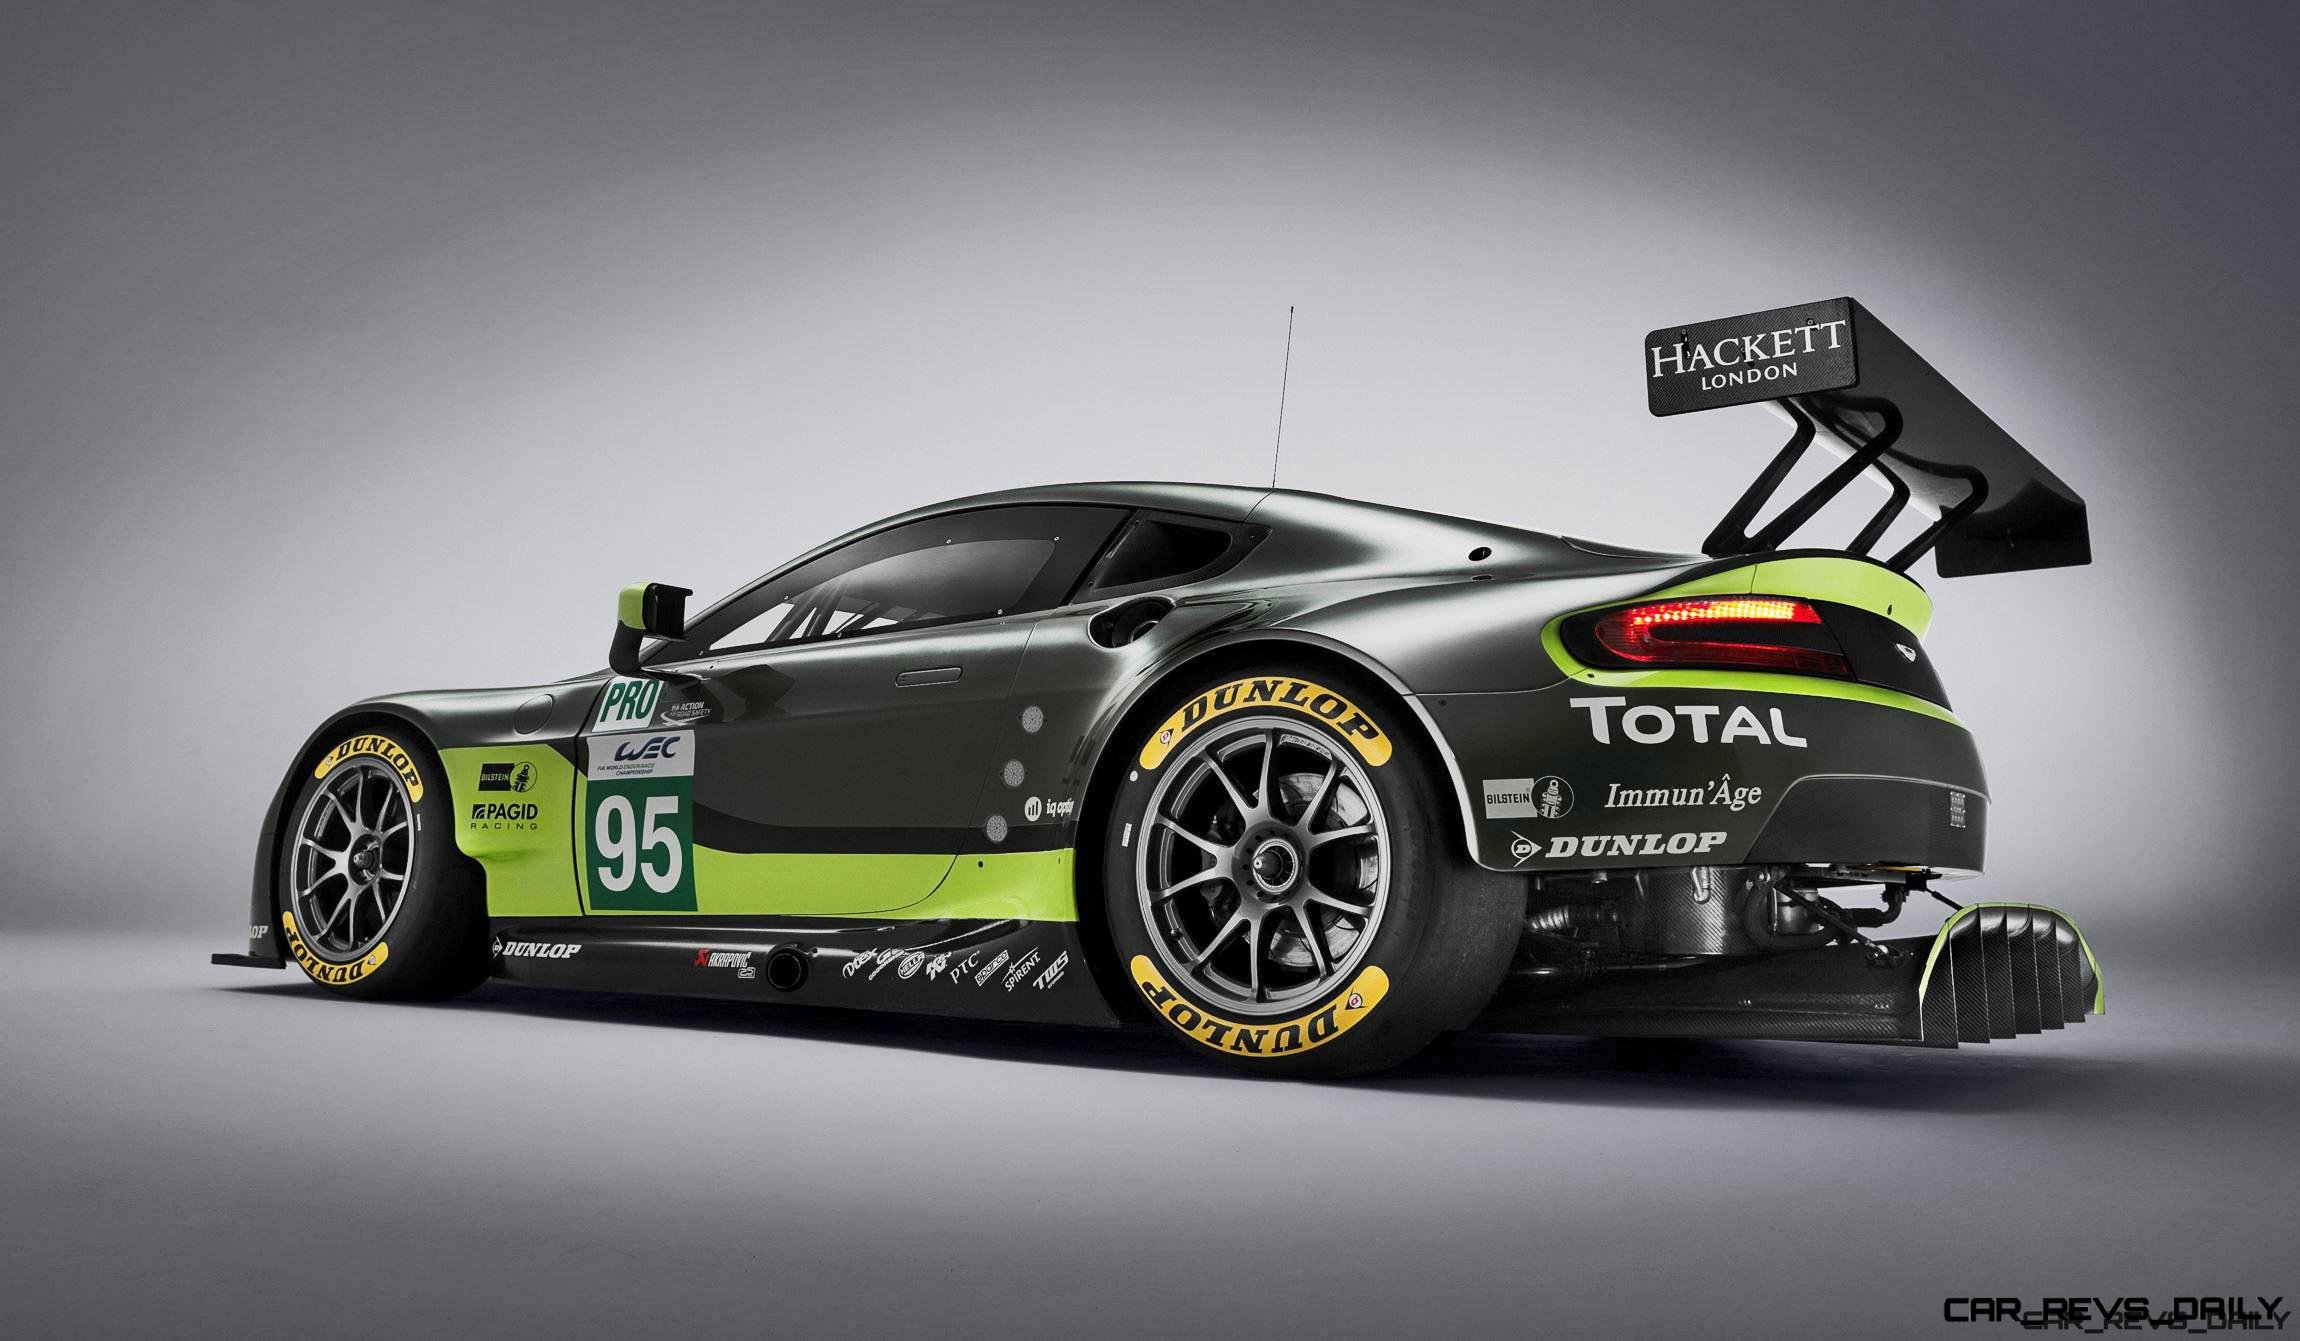 2016 Aston Martin V8 Vantage Gte Complements V12 Racecars Dismal Results Expected Car Revs Daily Com